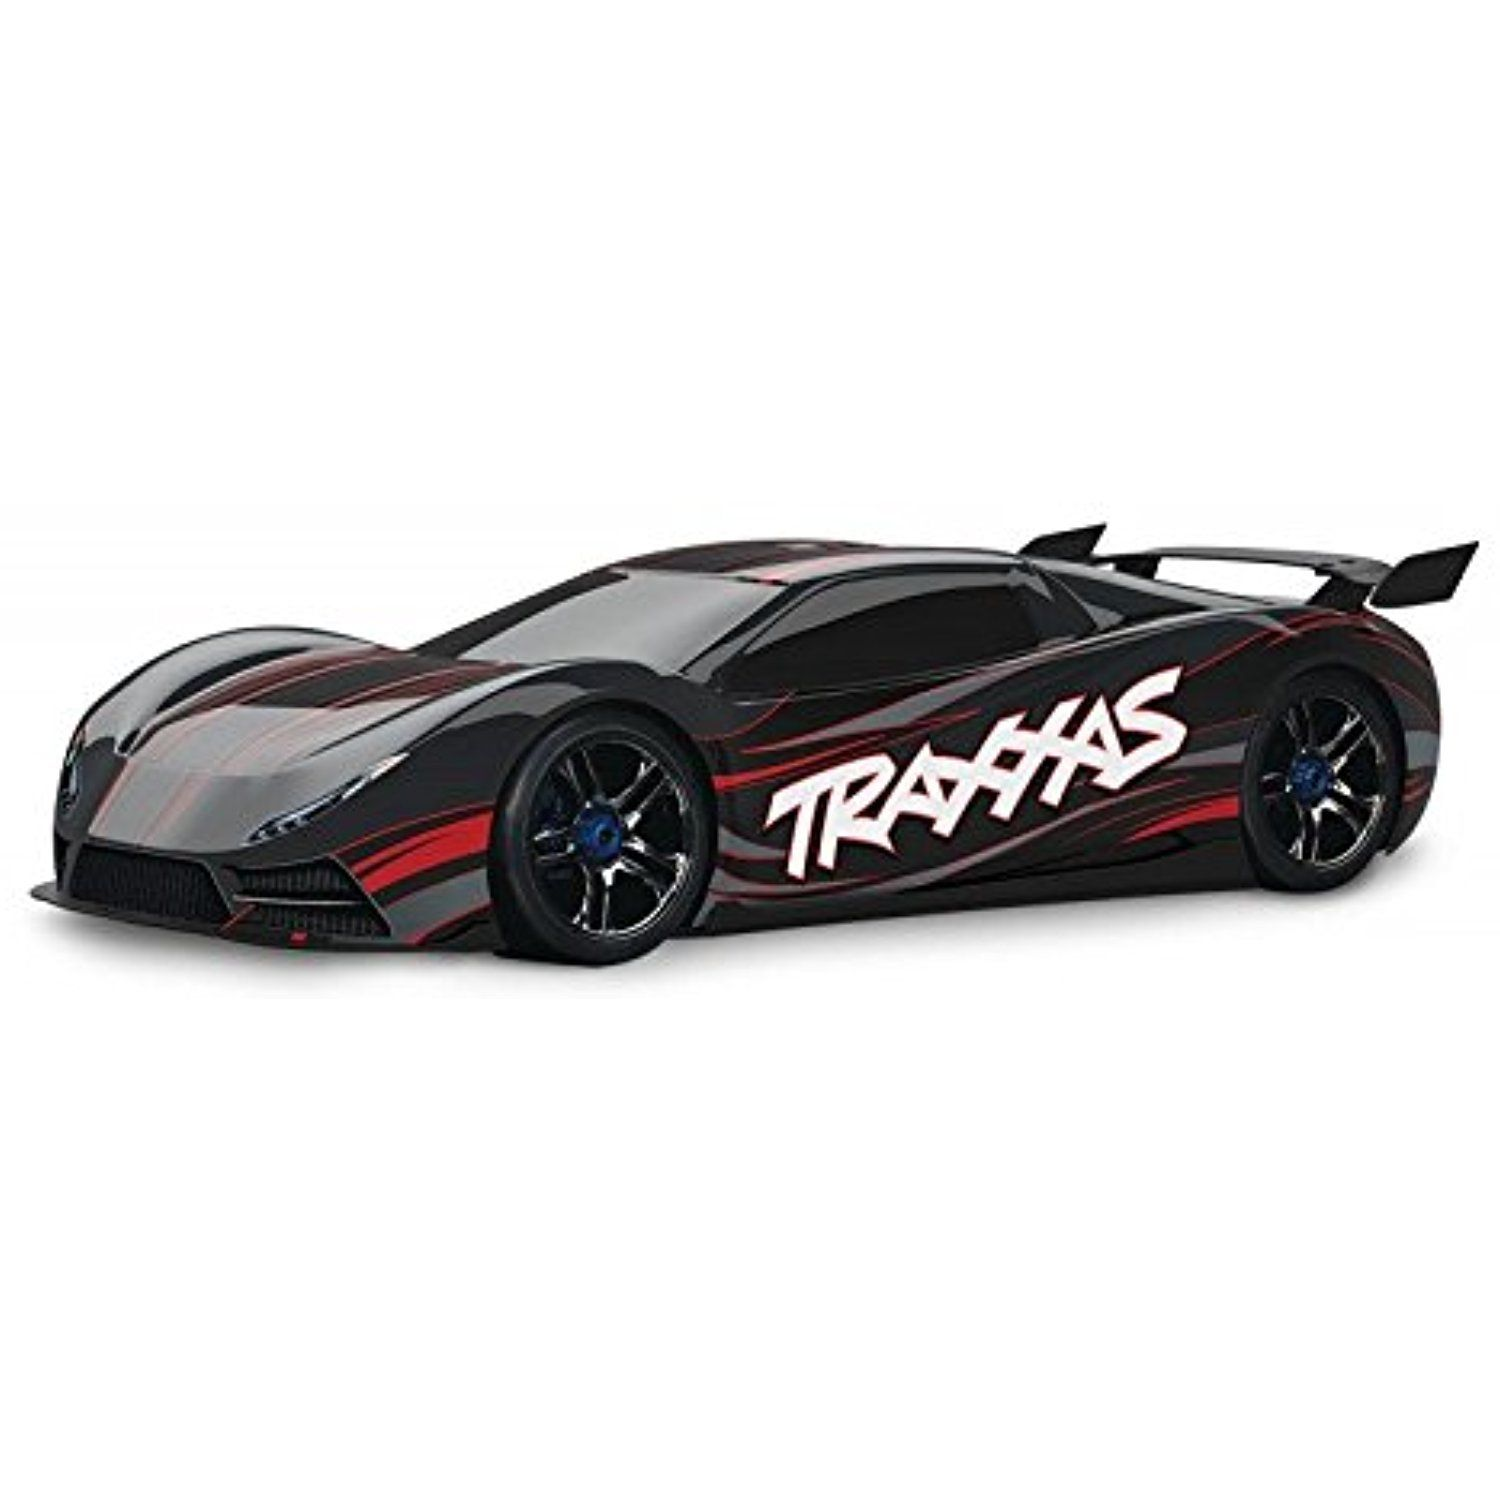 Traxxas Xo 1 Awd Rtr 1 7 Supercar No Batteries Want To Know More Click On The Image This Is An Affiliate Link Hobbies Traxxas Best Rc Cars Super Cars